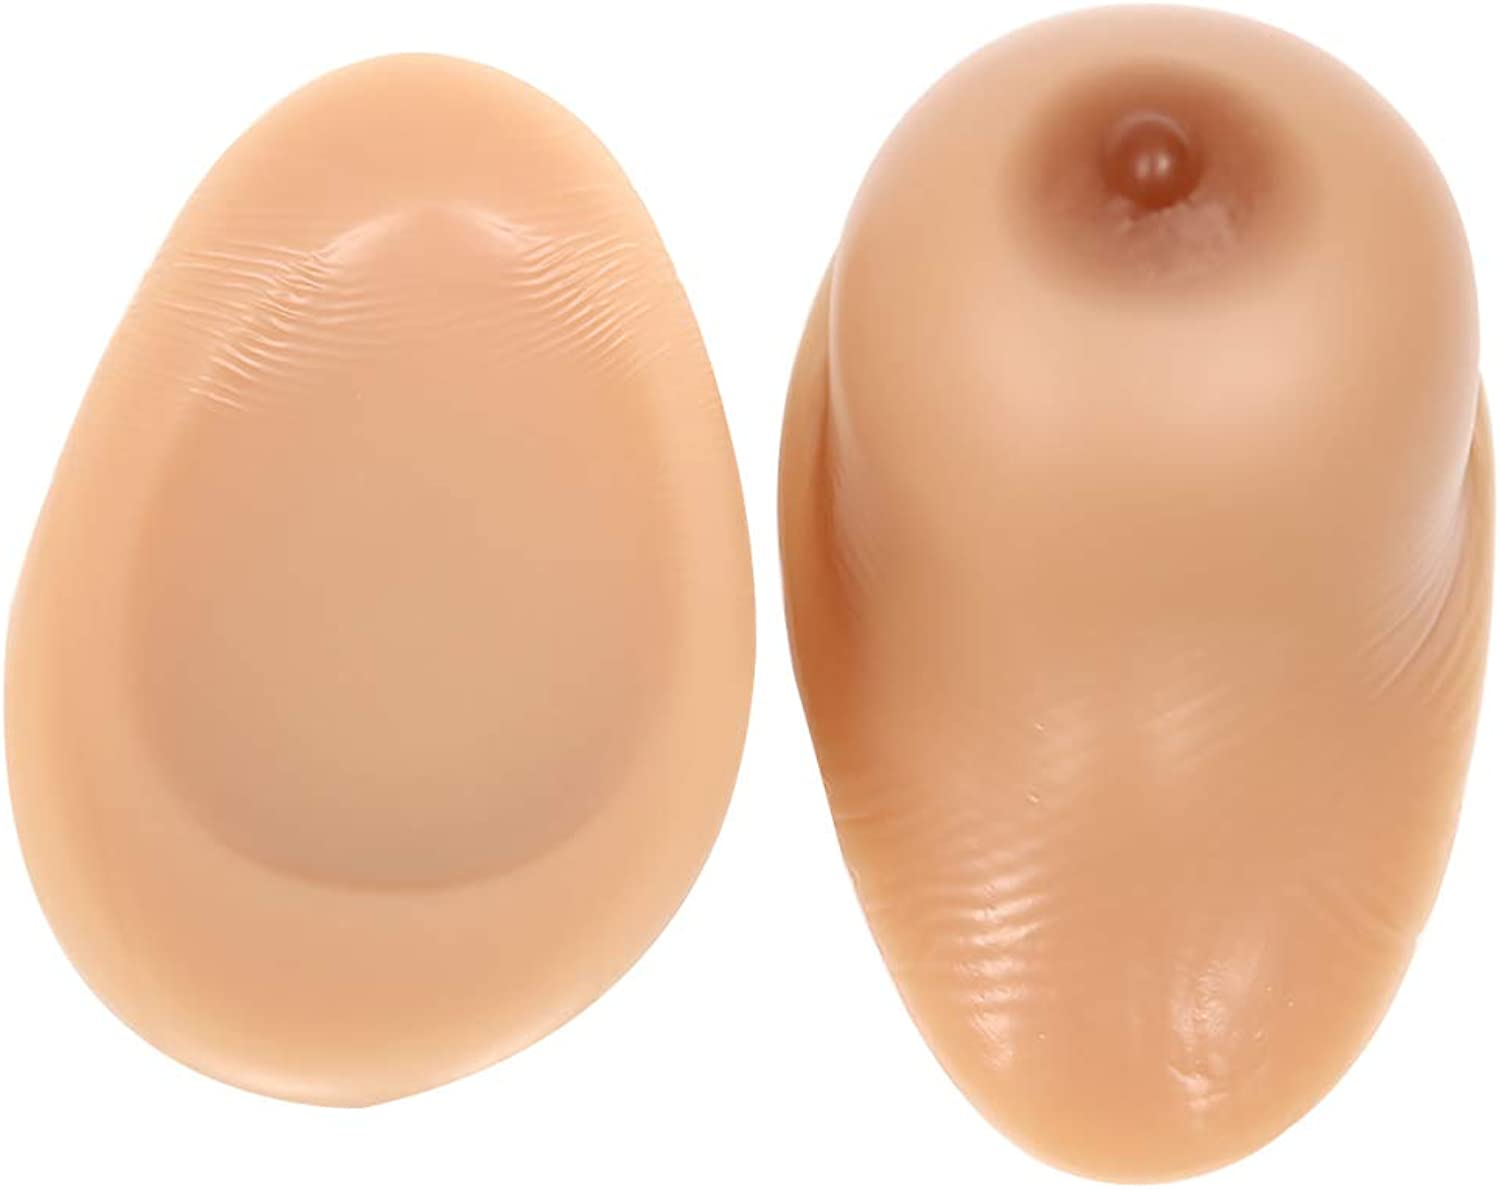 Round Silicone Breast Breast Prosthesis Fake Chest Full Boob Touch Feeling Like Real Human Breasts Used,BrownNonStickM 1.3Lb Pair